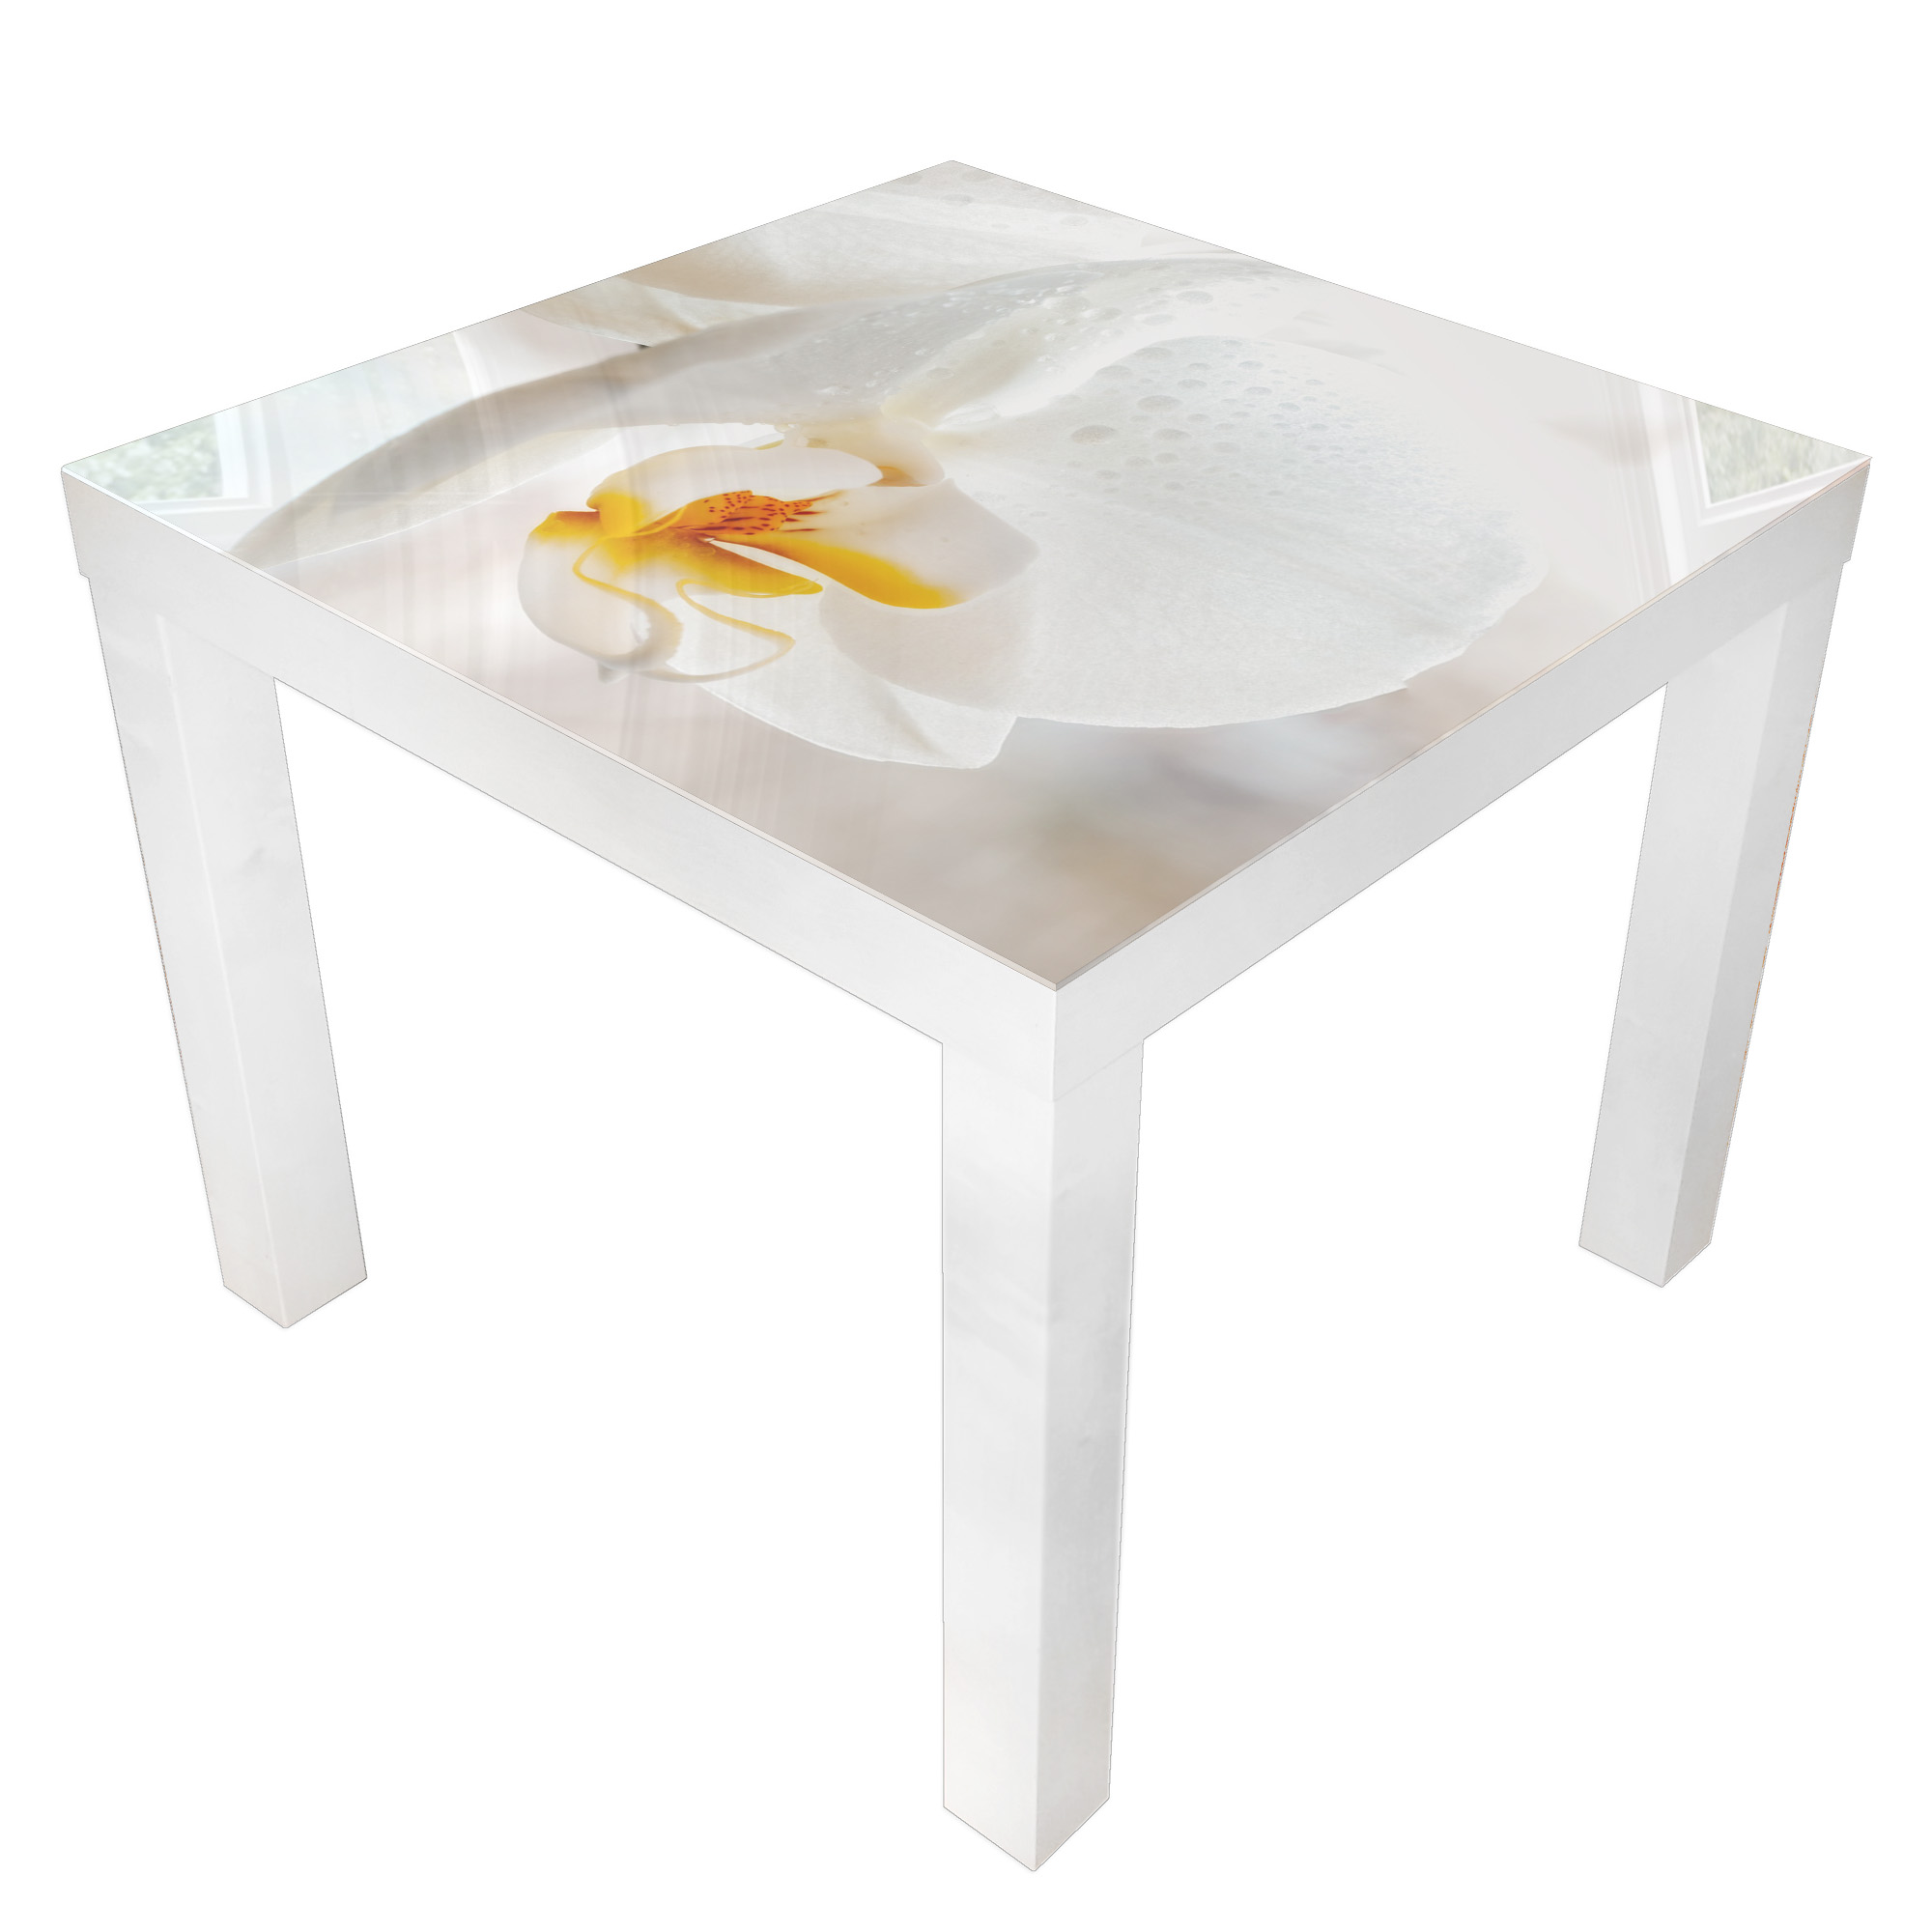 Details About Coffee Tables Home Decoration Safe Tempered Glass With Graphics 55x55cm